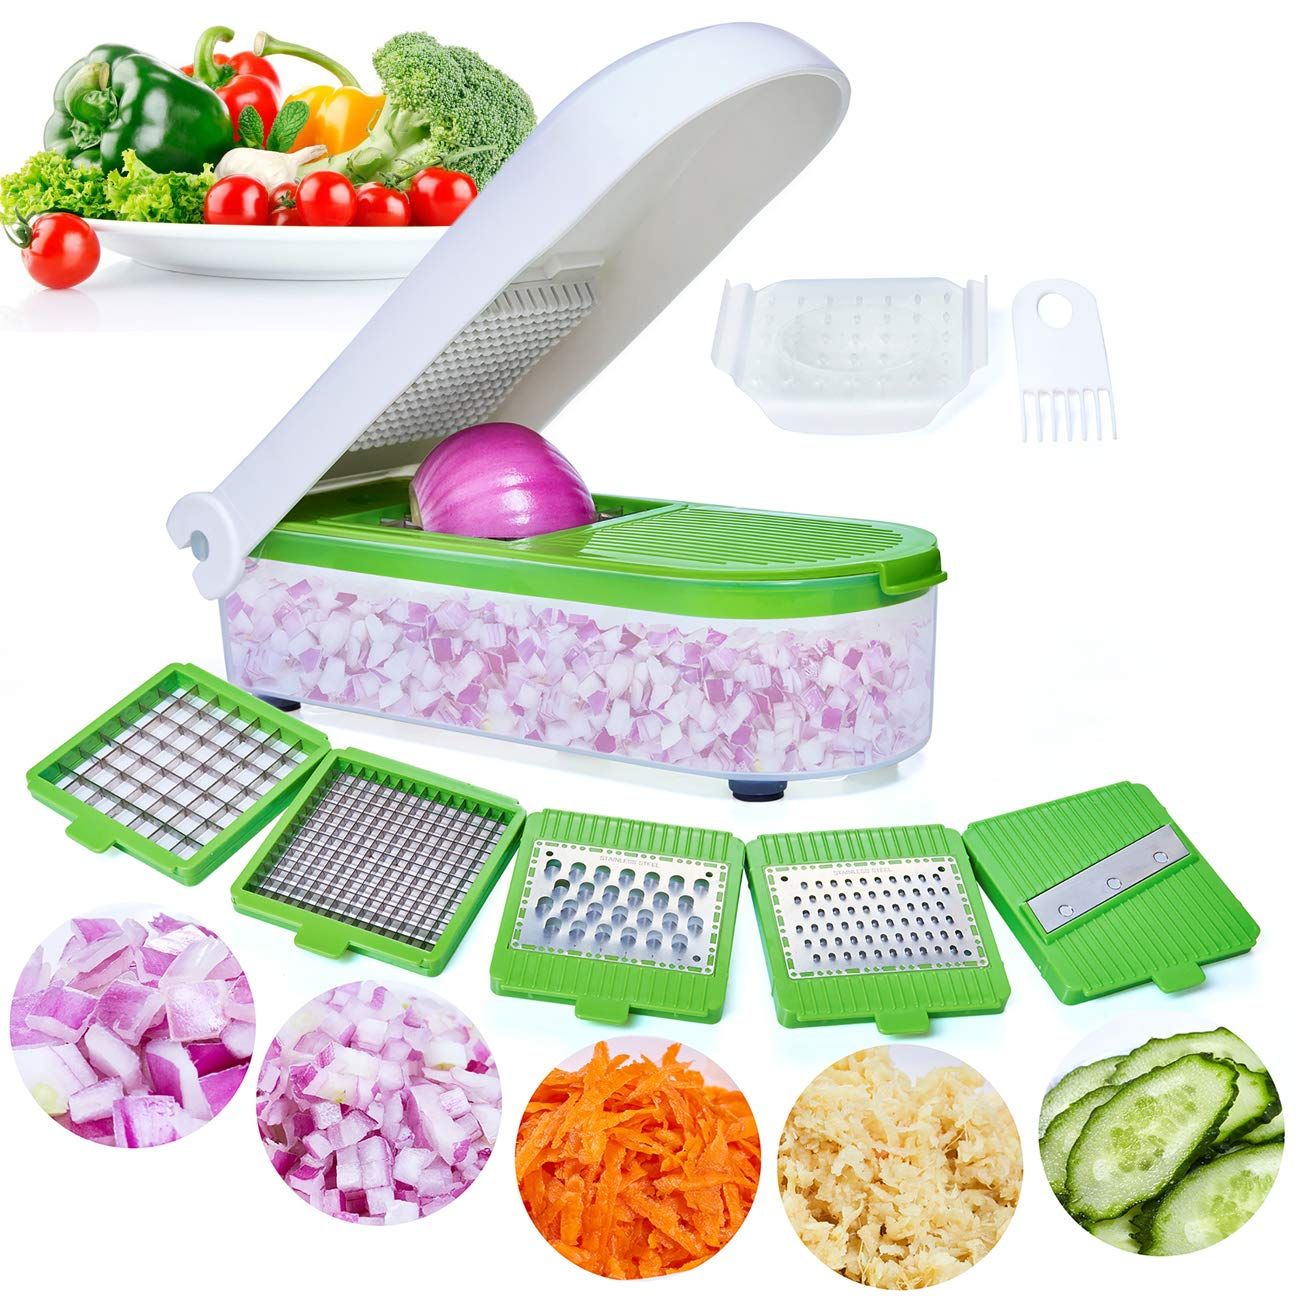 Onion Chopper Vegetable Dicer Food Spiralizer